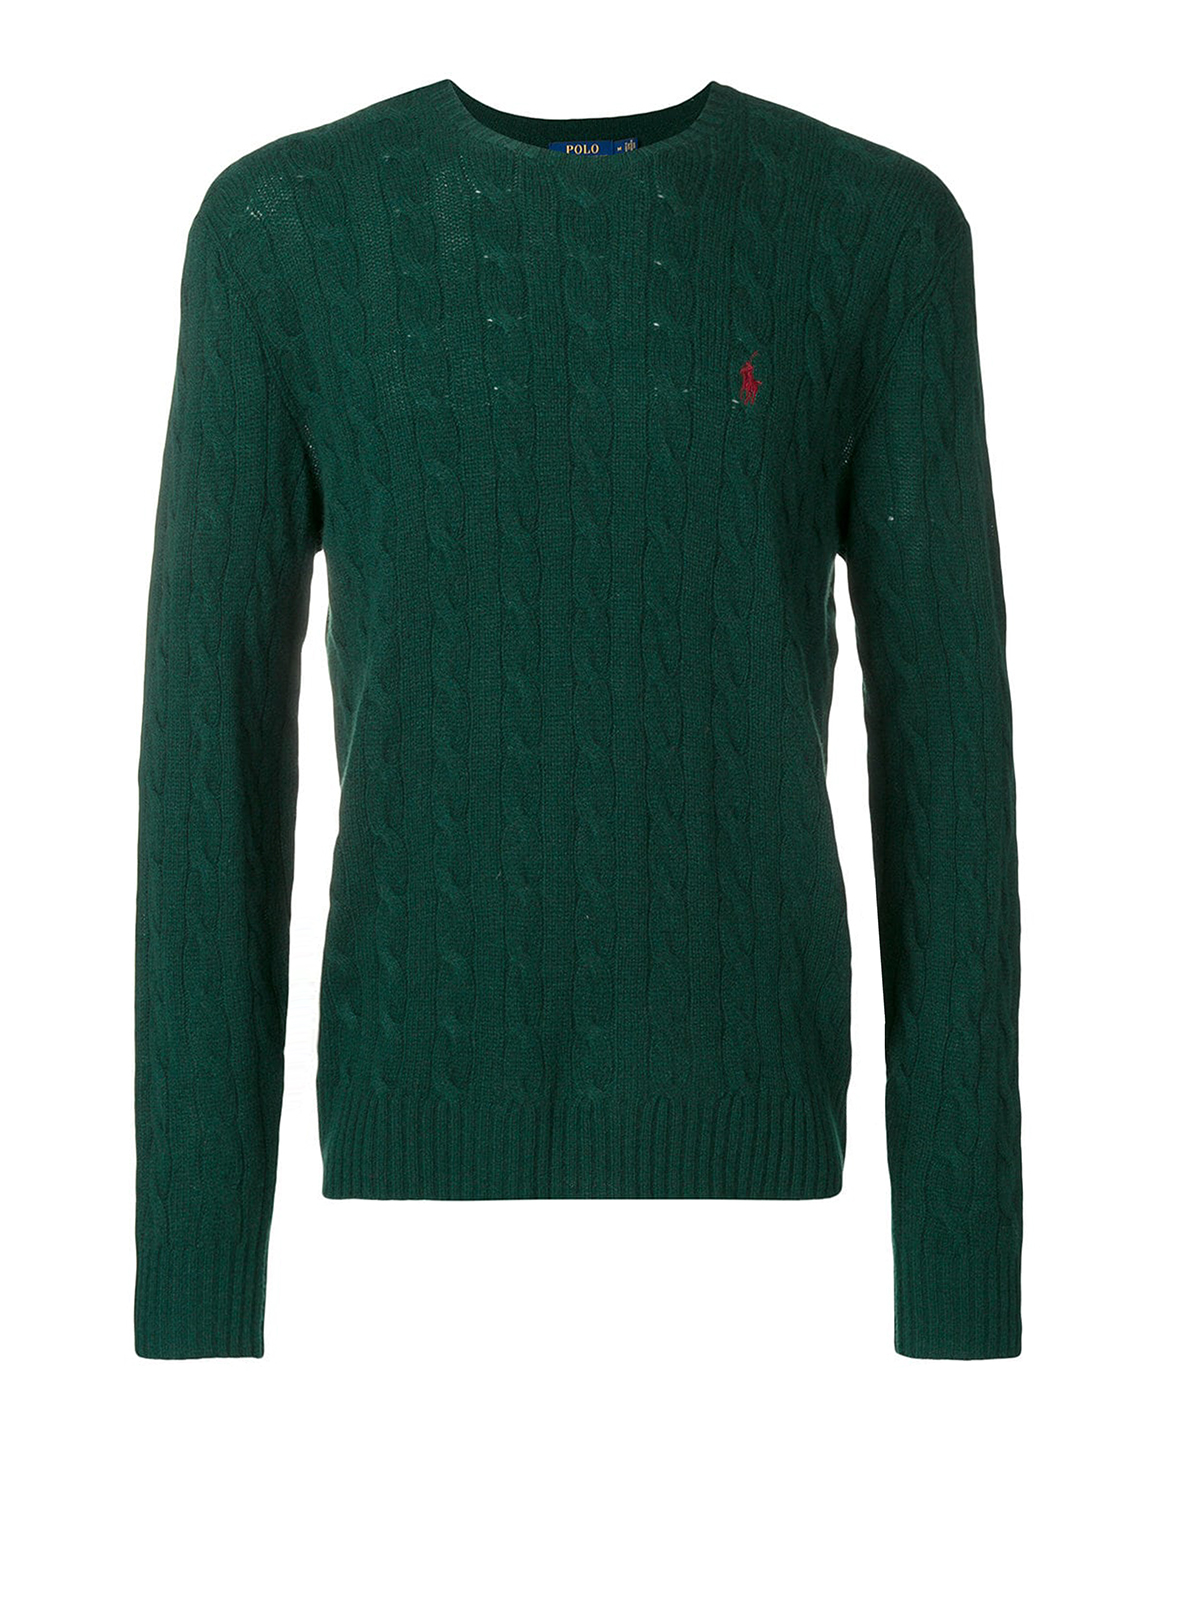 ab167ec4f POLO RALPH LAUREN  crew necks - Green cable knit wool and cashmere sweater